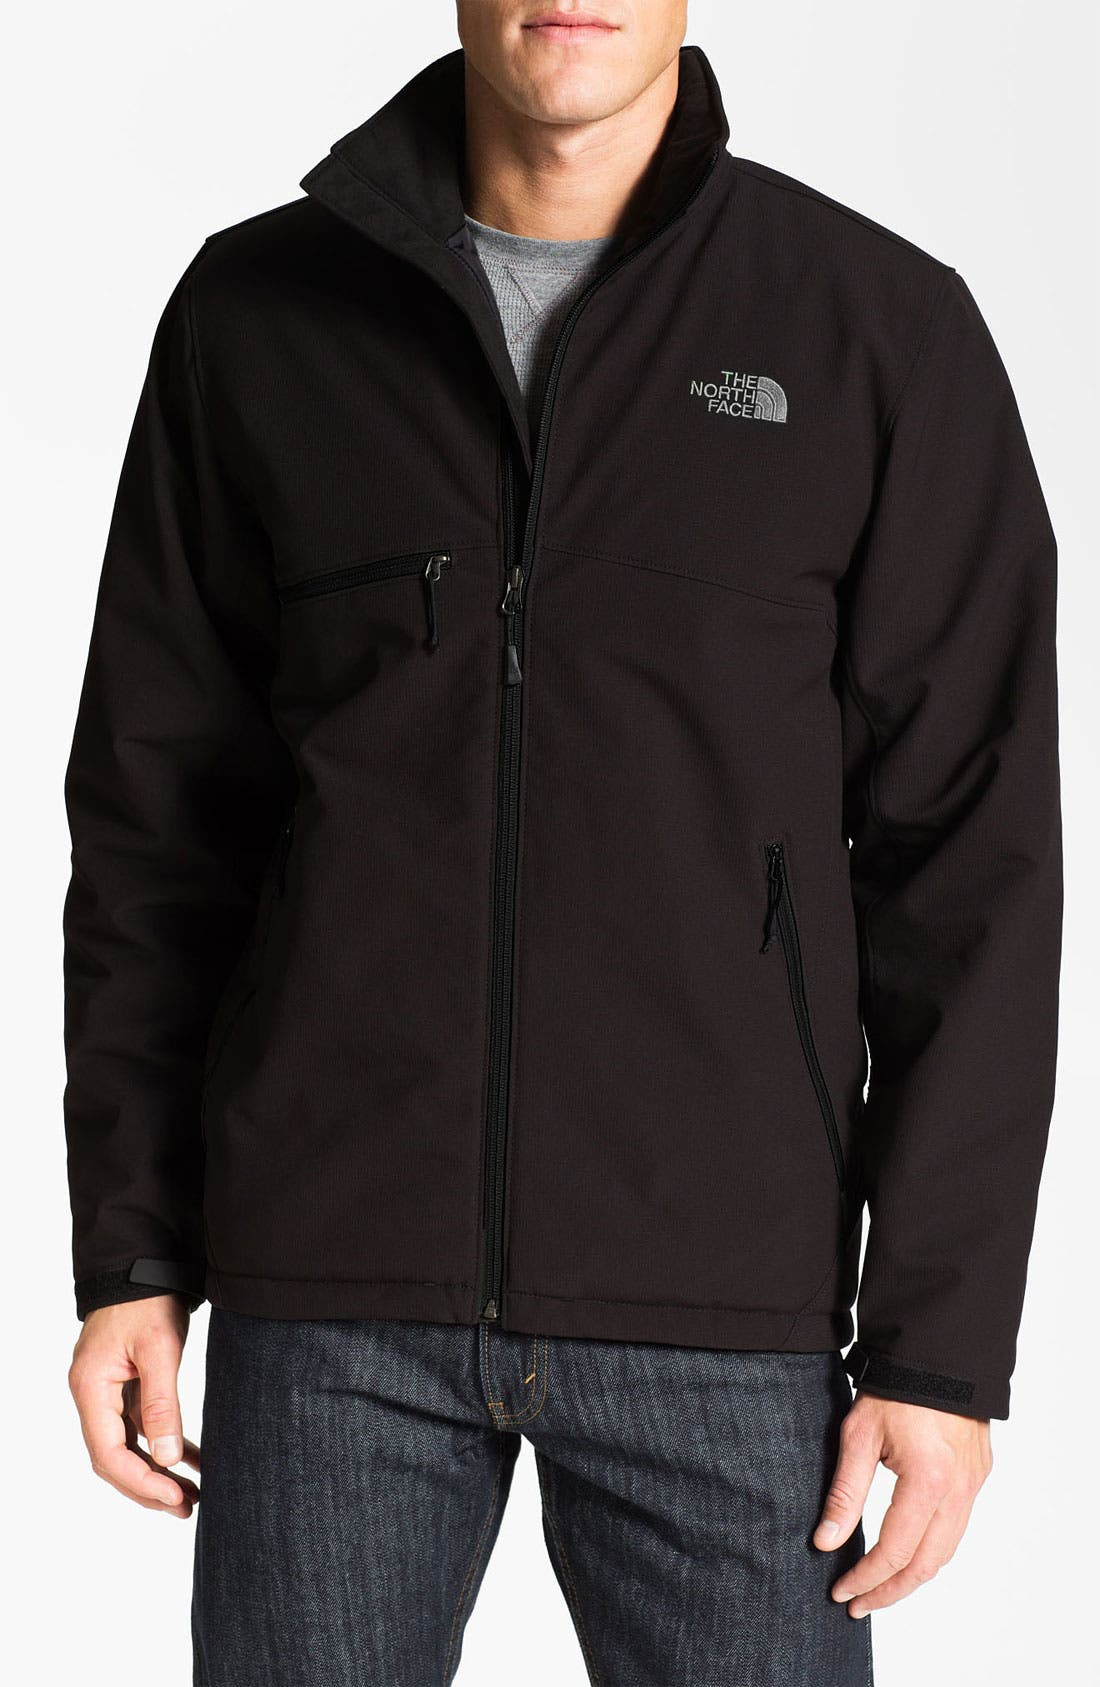 Main Image - The North Face 'Canyonlands' Insulated Jacket